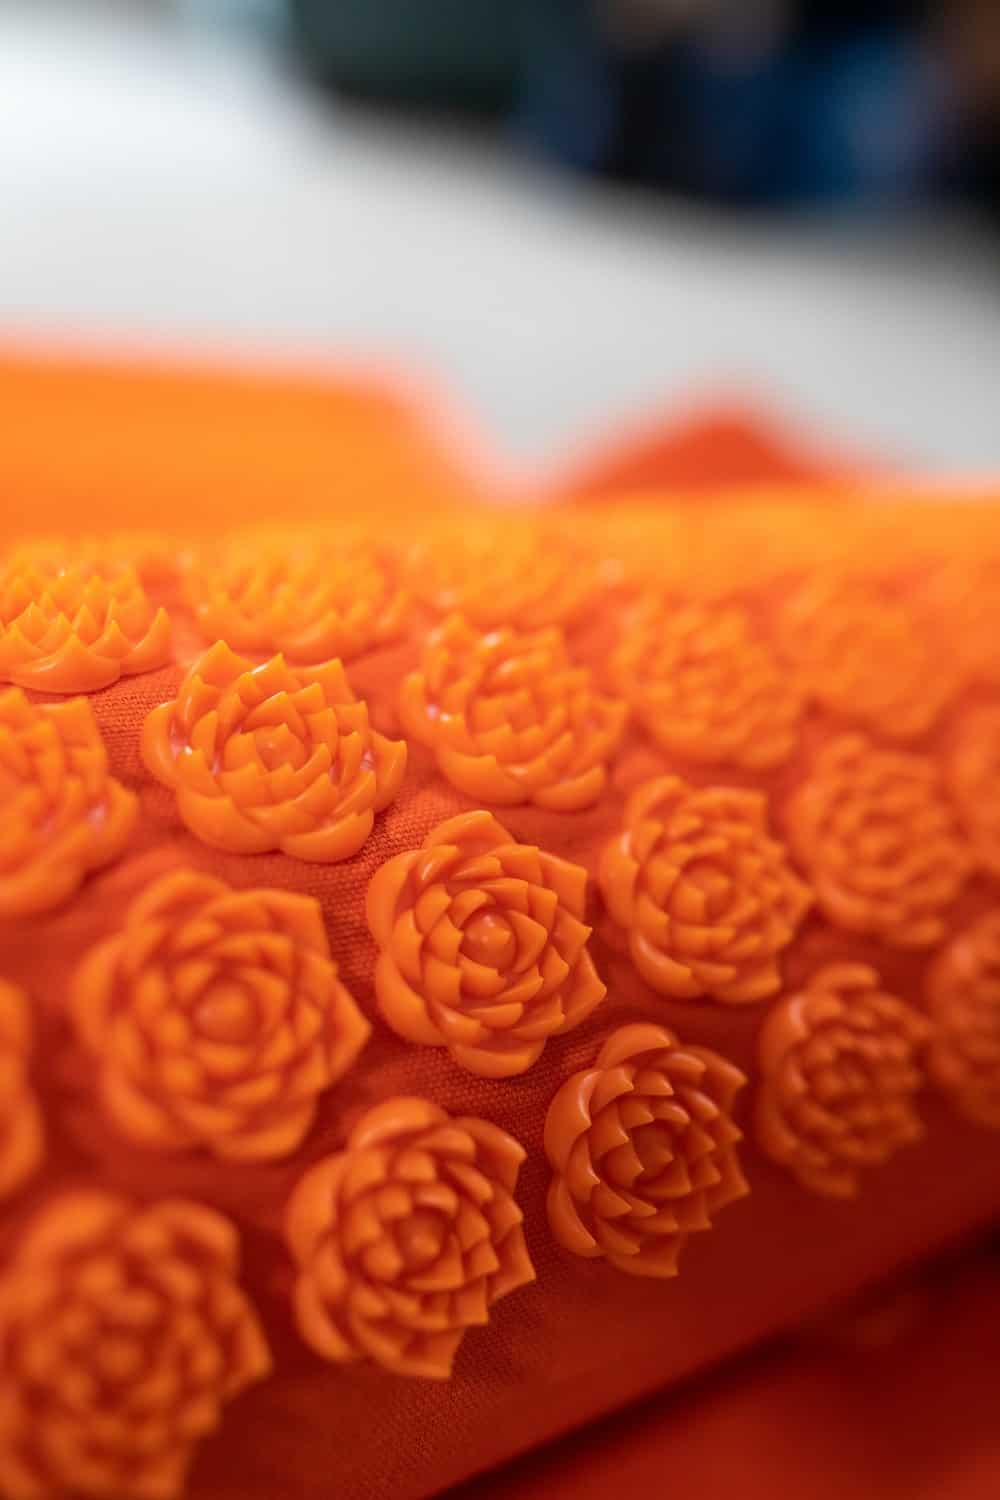 an acupressure pillow with hard plastic flowers